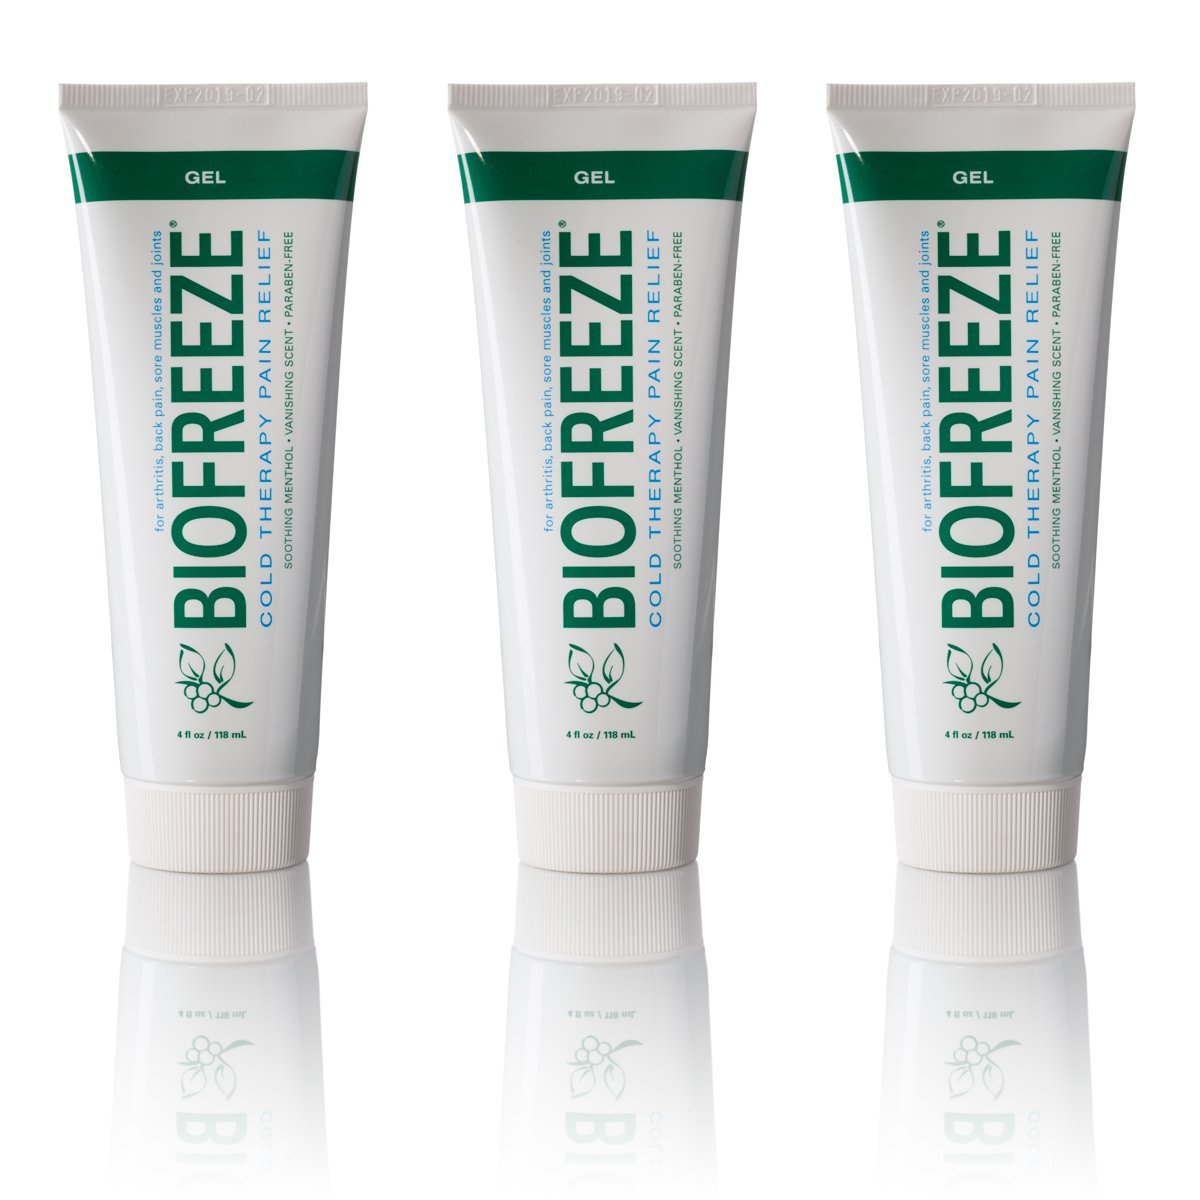 Biofreeze Pain Relief Gel, 4 oz. Tube, Pack of 3 by Biofreeze